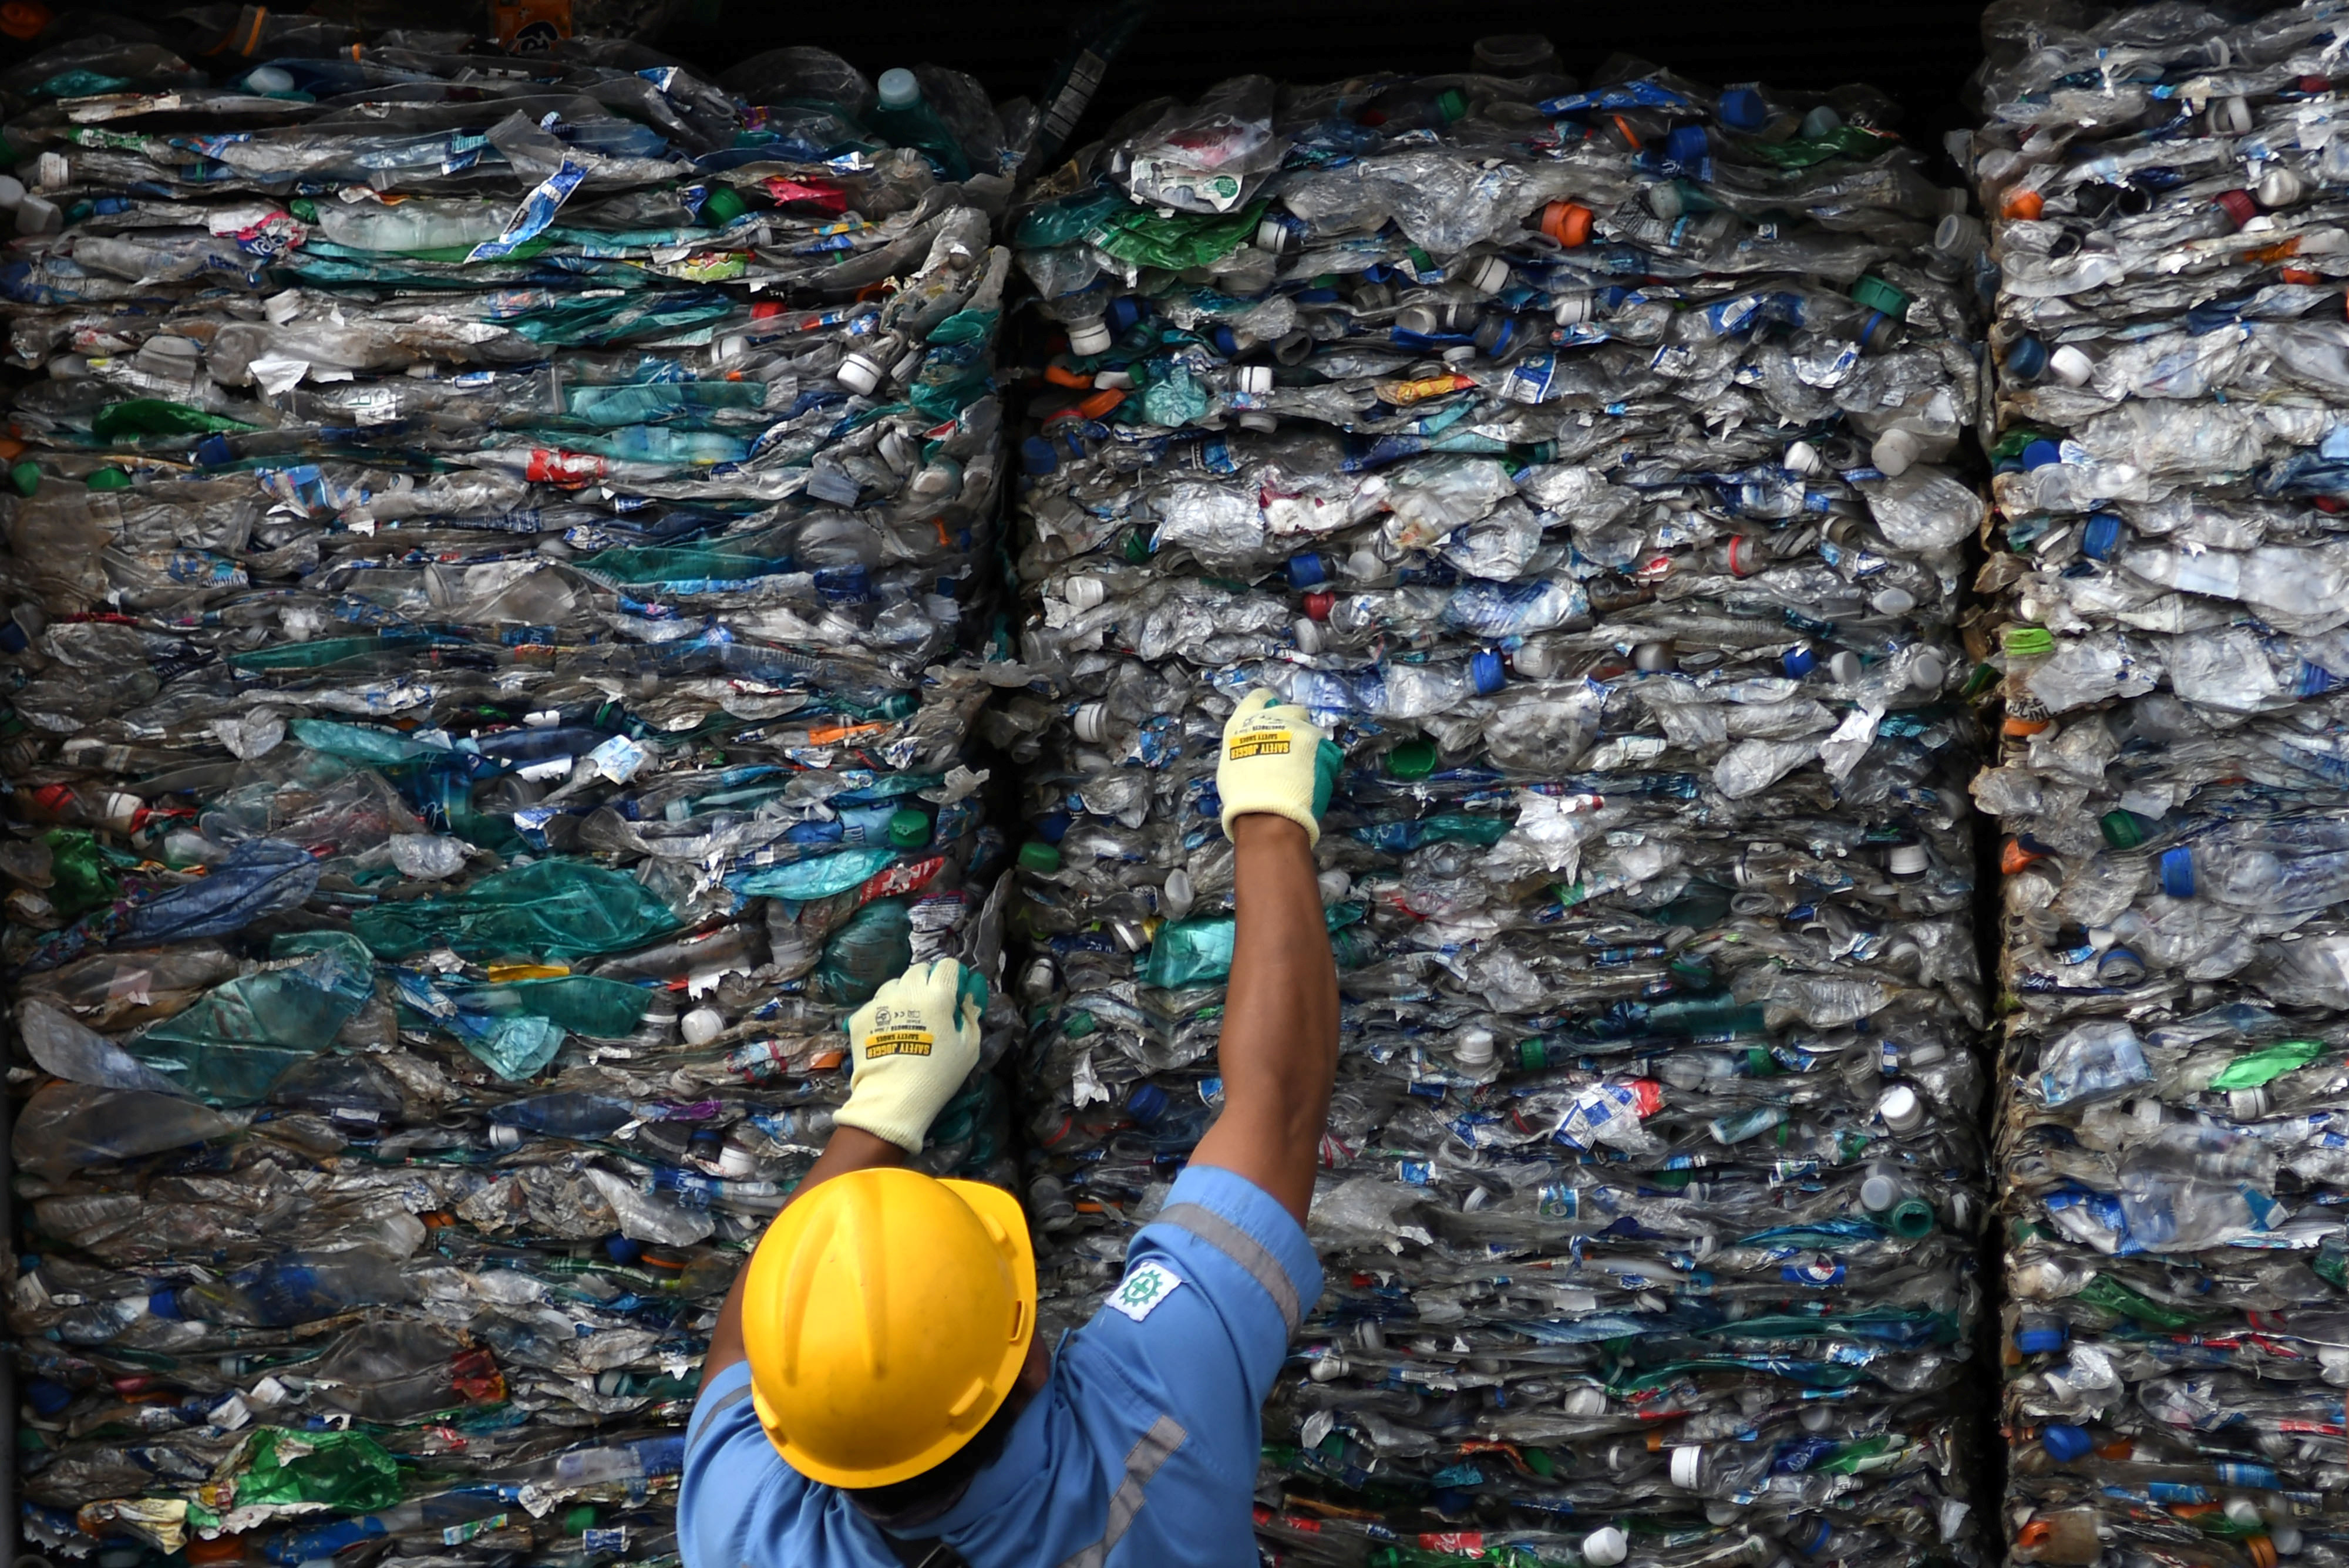 An officer shows a container full with plastic waste at Tanjung Priok port in Jakarta, Indonesia, September 18, 2019.